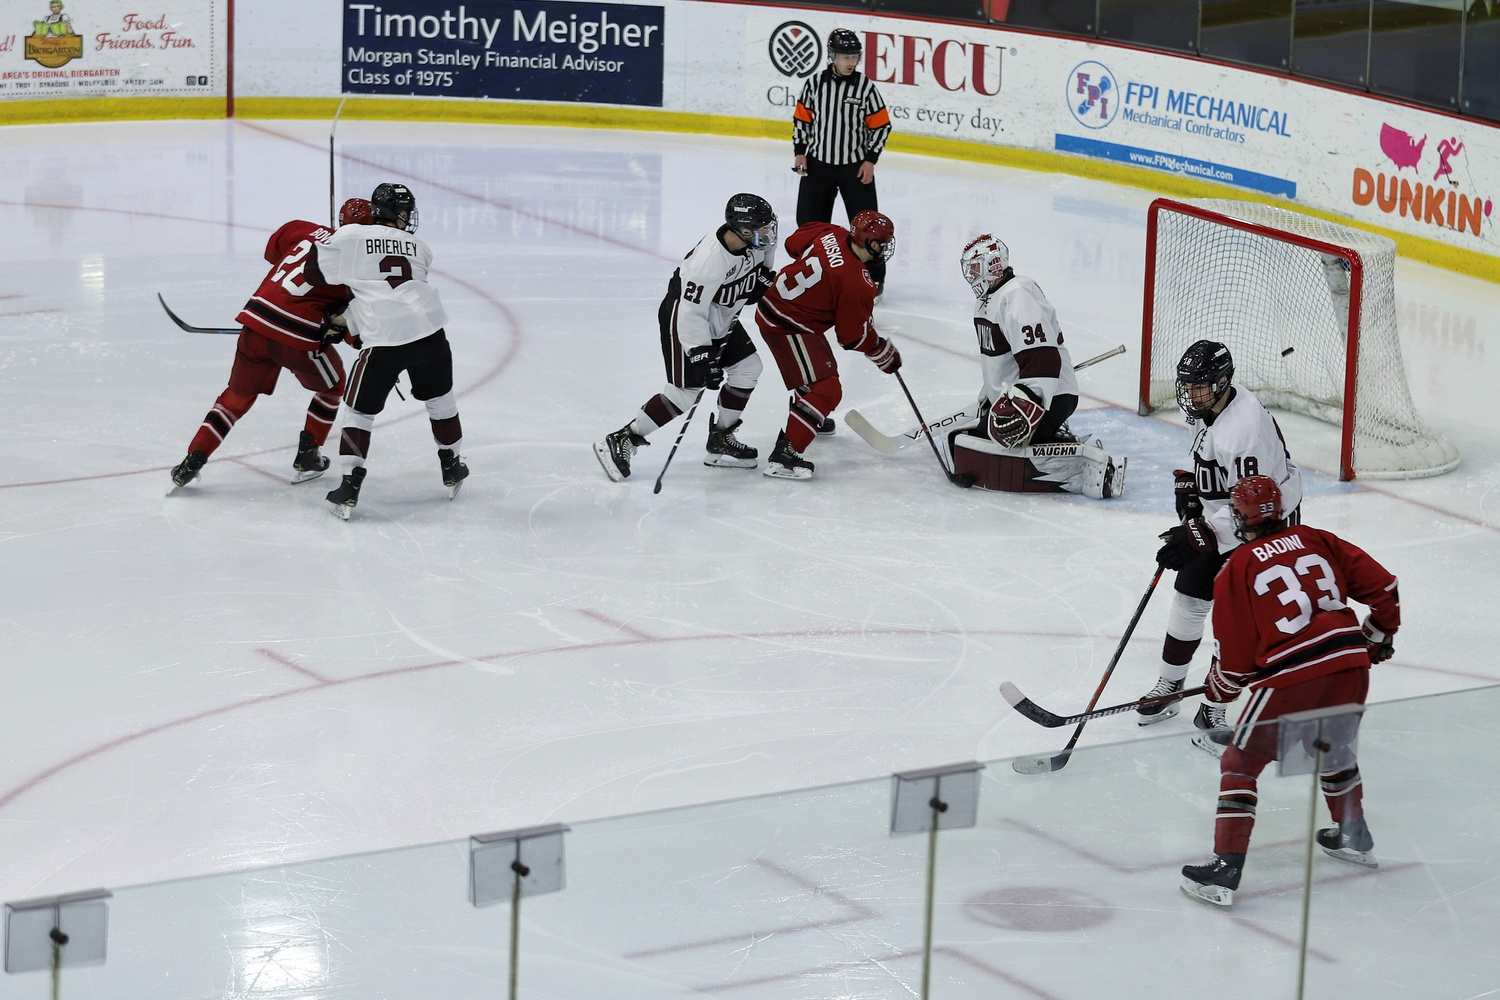 Harvard's first strike of the night came off a redirect from junior Henry Bowlby.